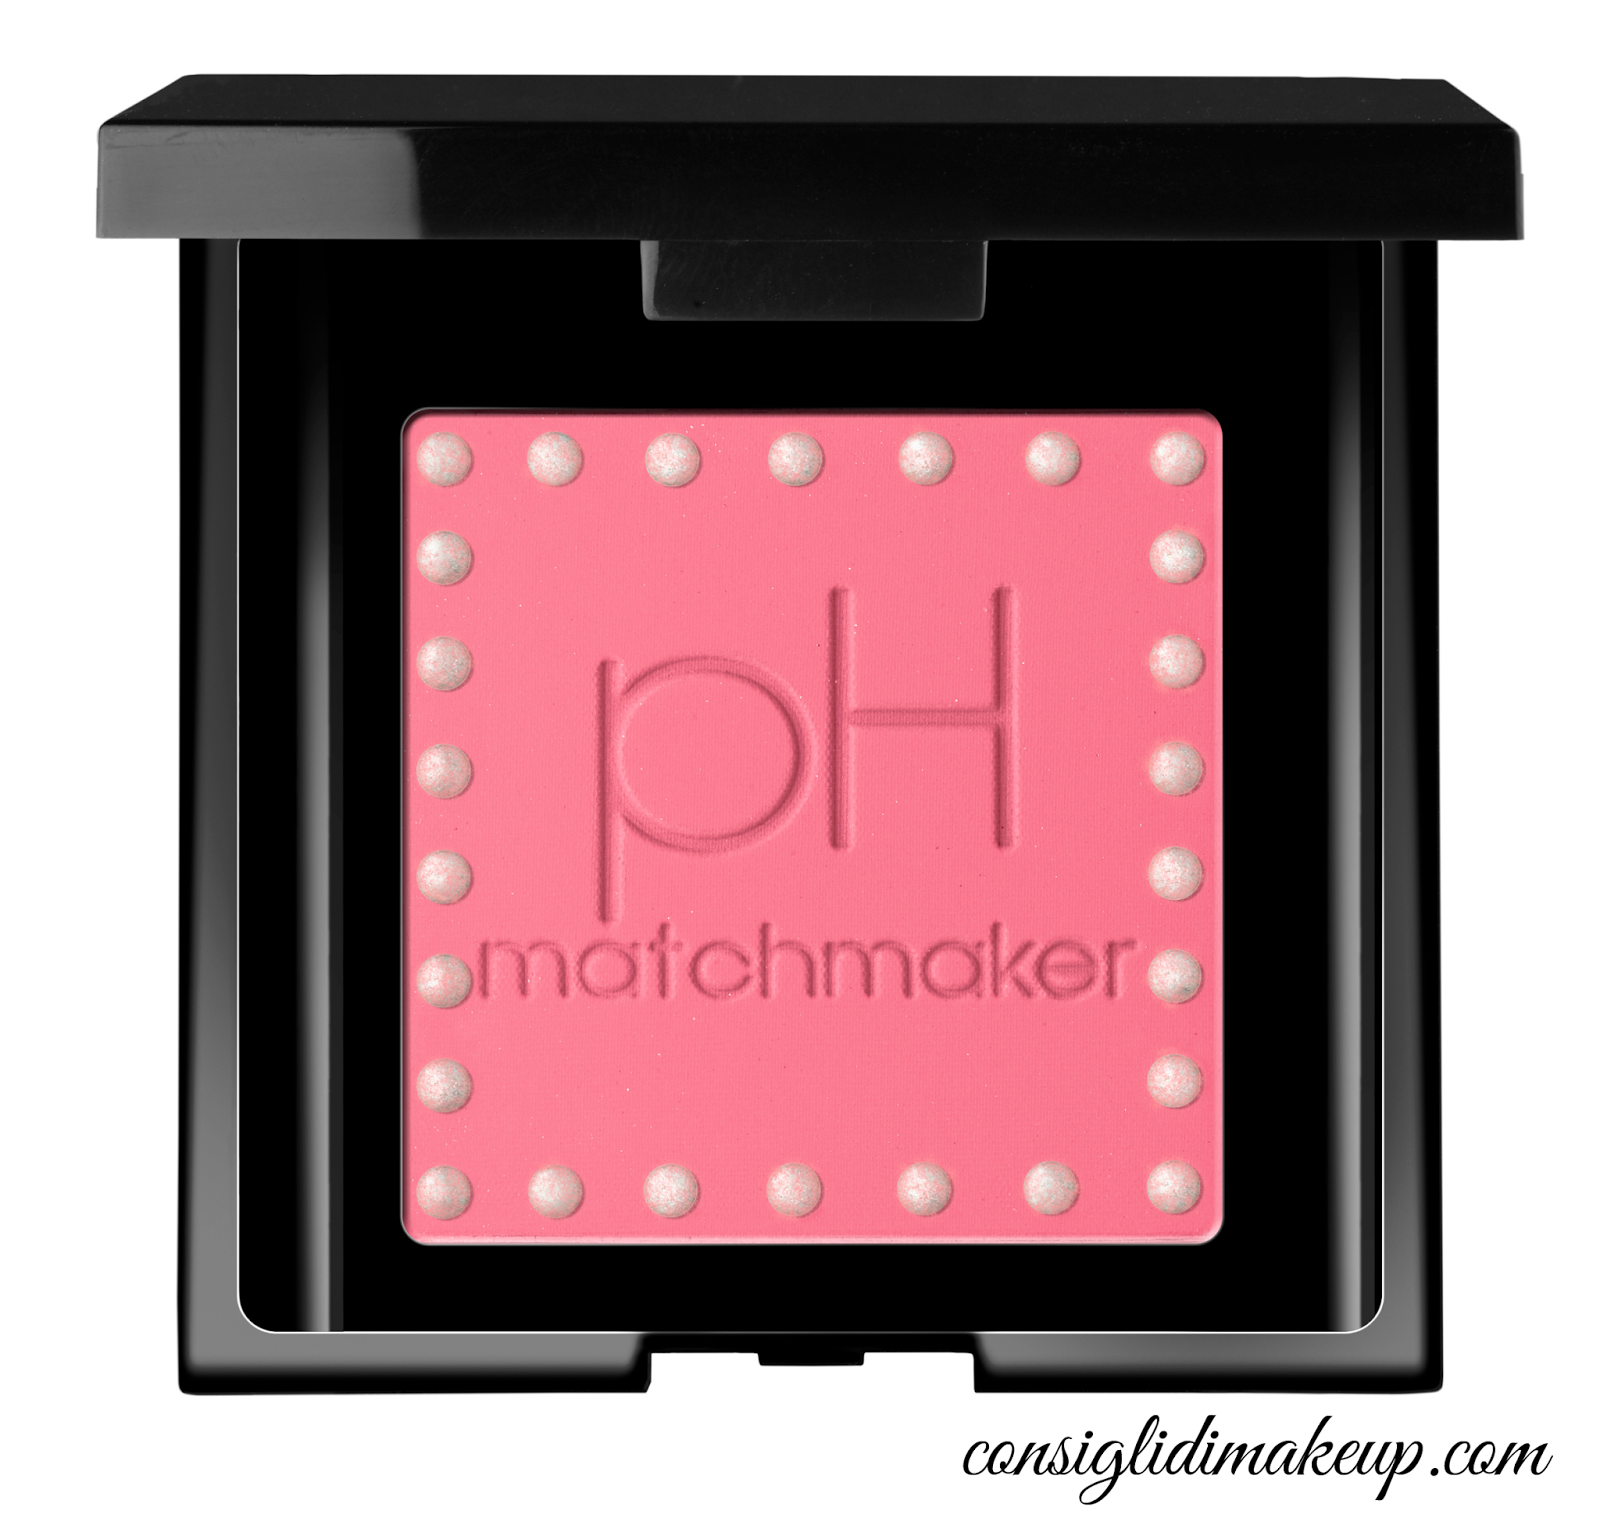 ph matchmaker blush physicians formula